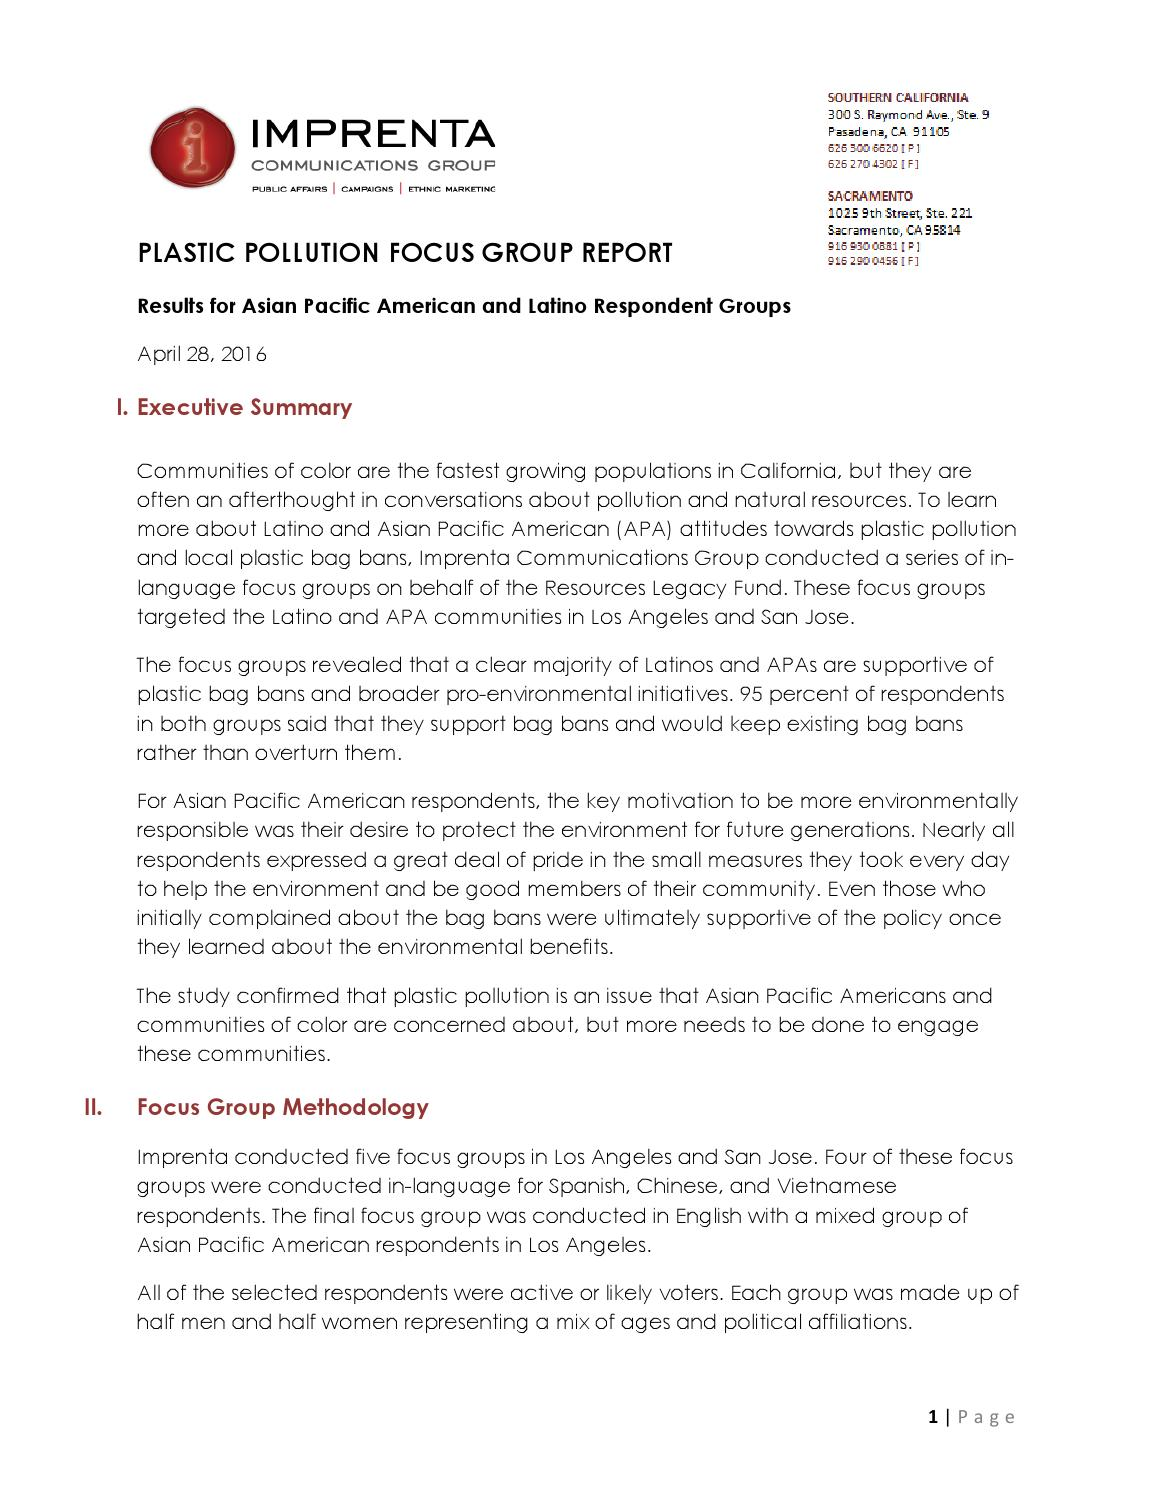 Imprenta focus group brief (english) by stopplasticbags - issuu